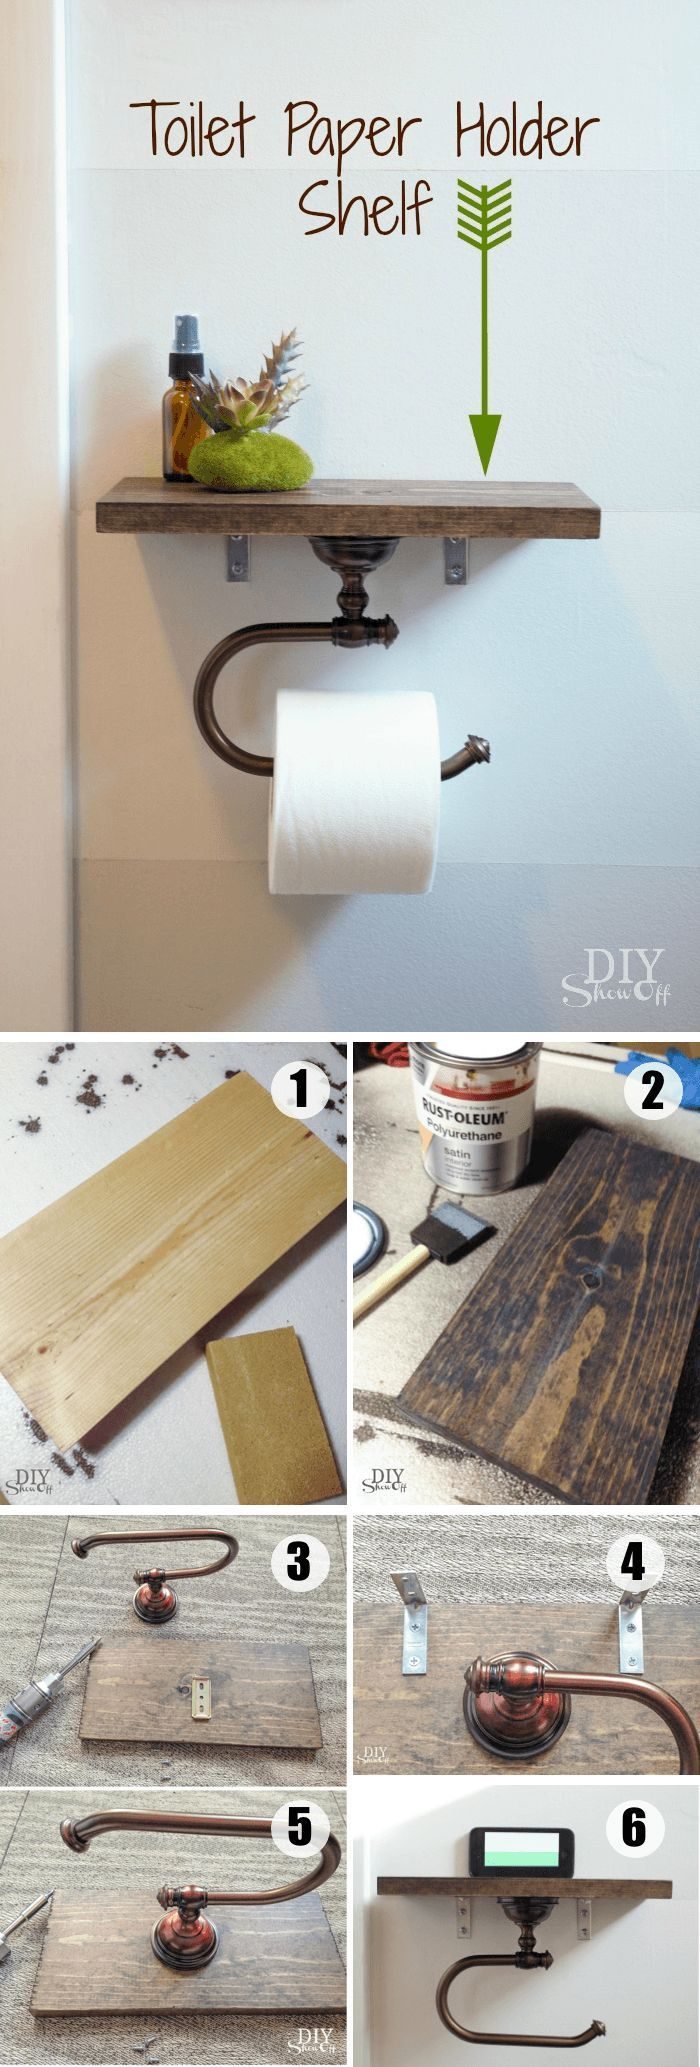 DIY Toilet Paper Holder With Shelf // Use This Clever And Functional Toilet  Paper Holder To Keep Small Handy Bathroom Accessories Or To Create  Attractive ...